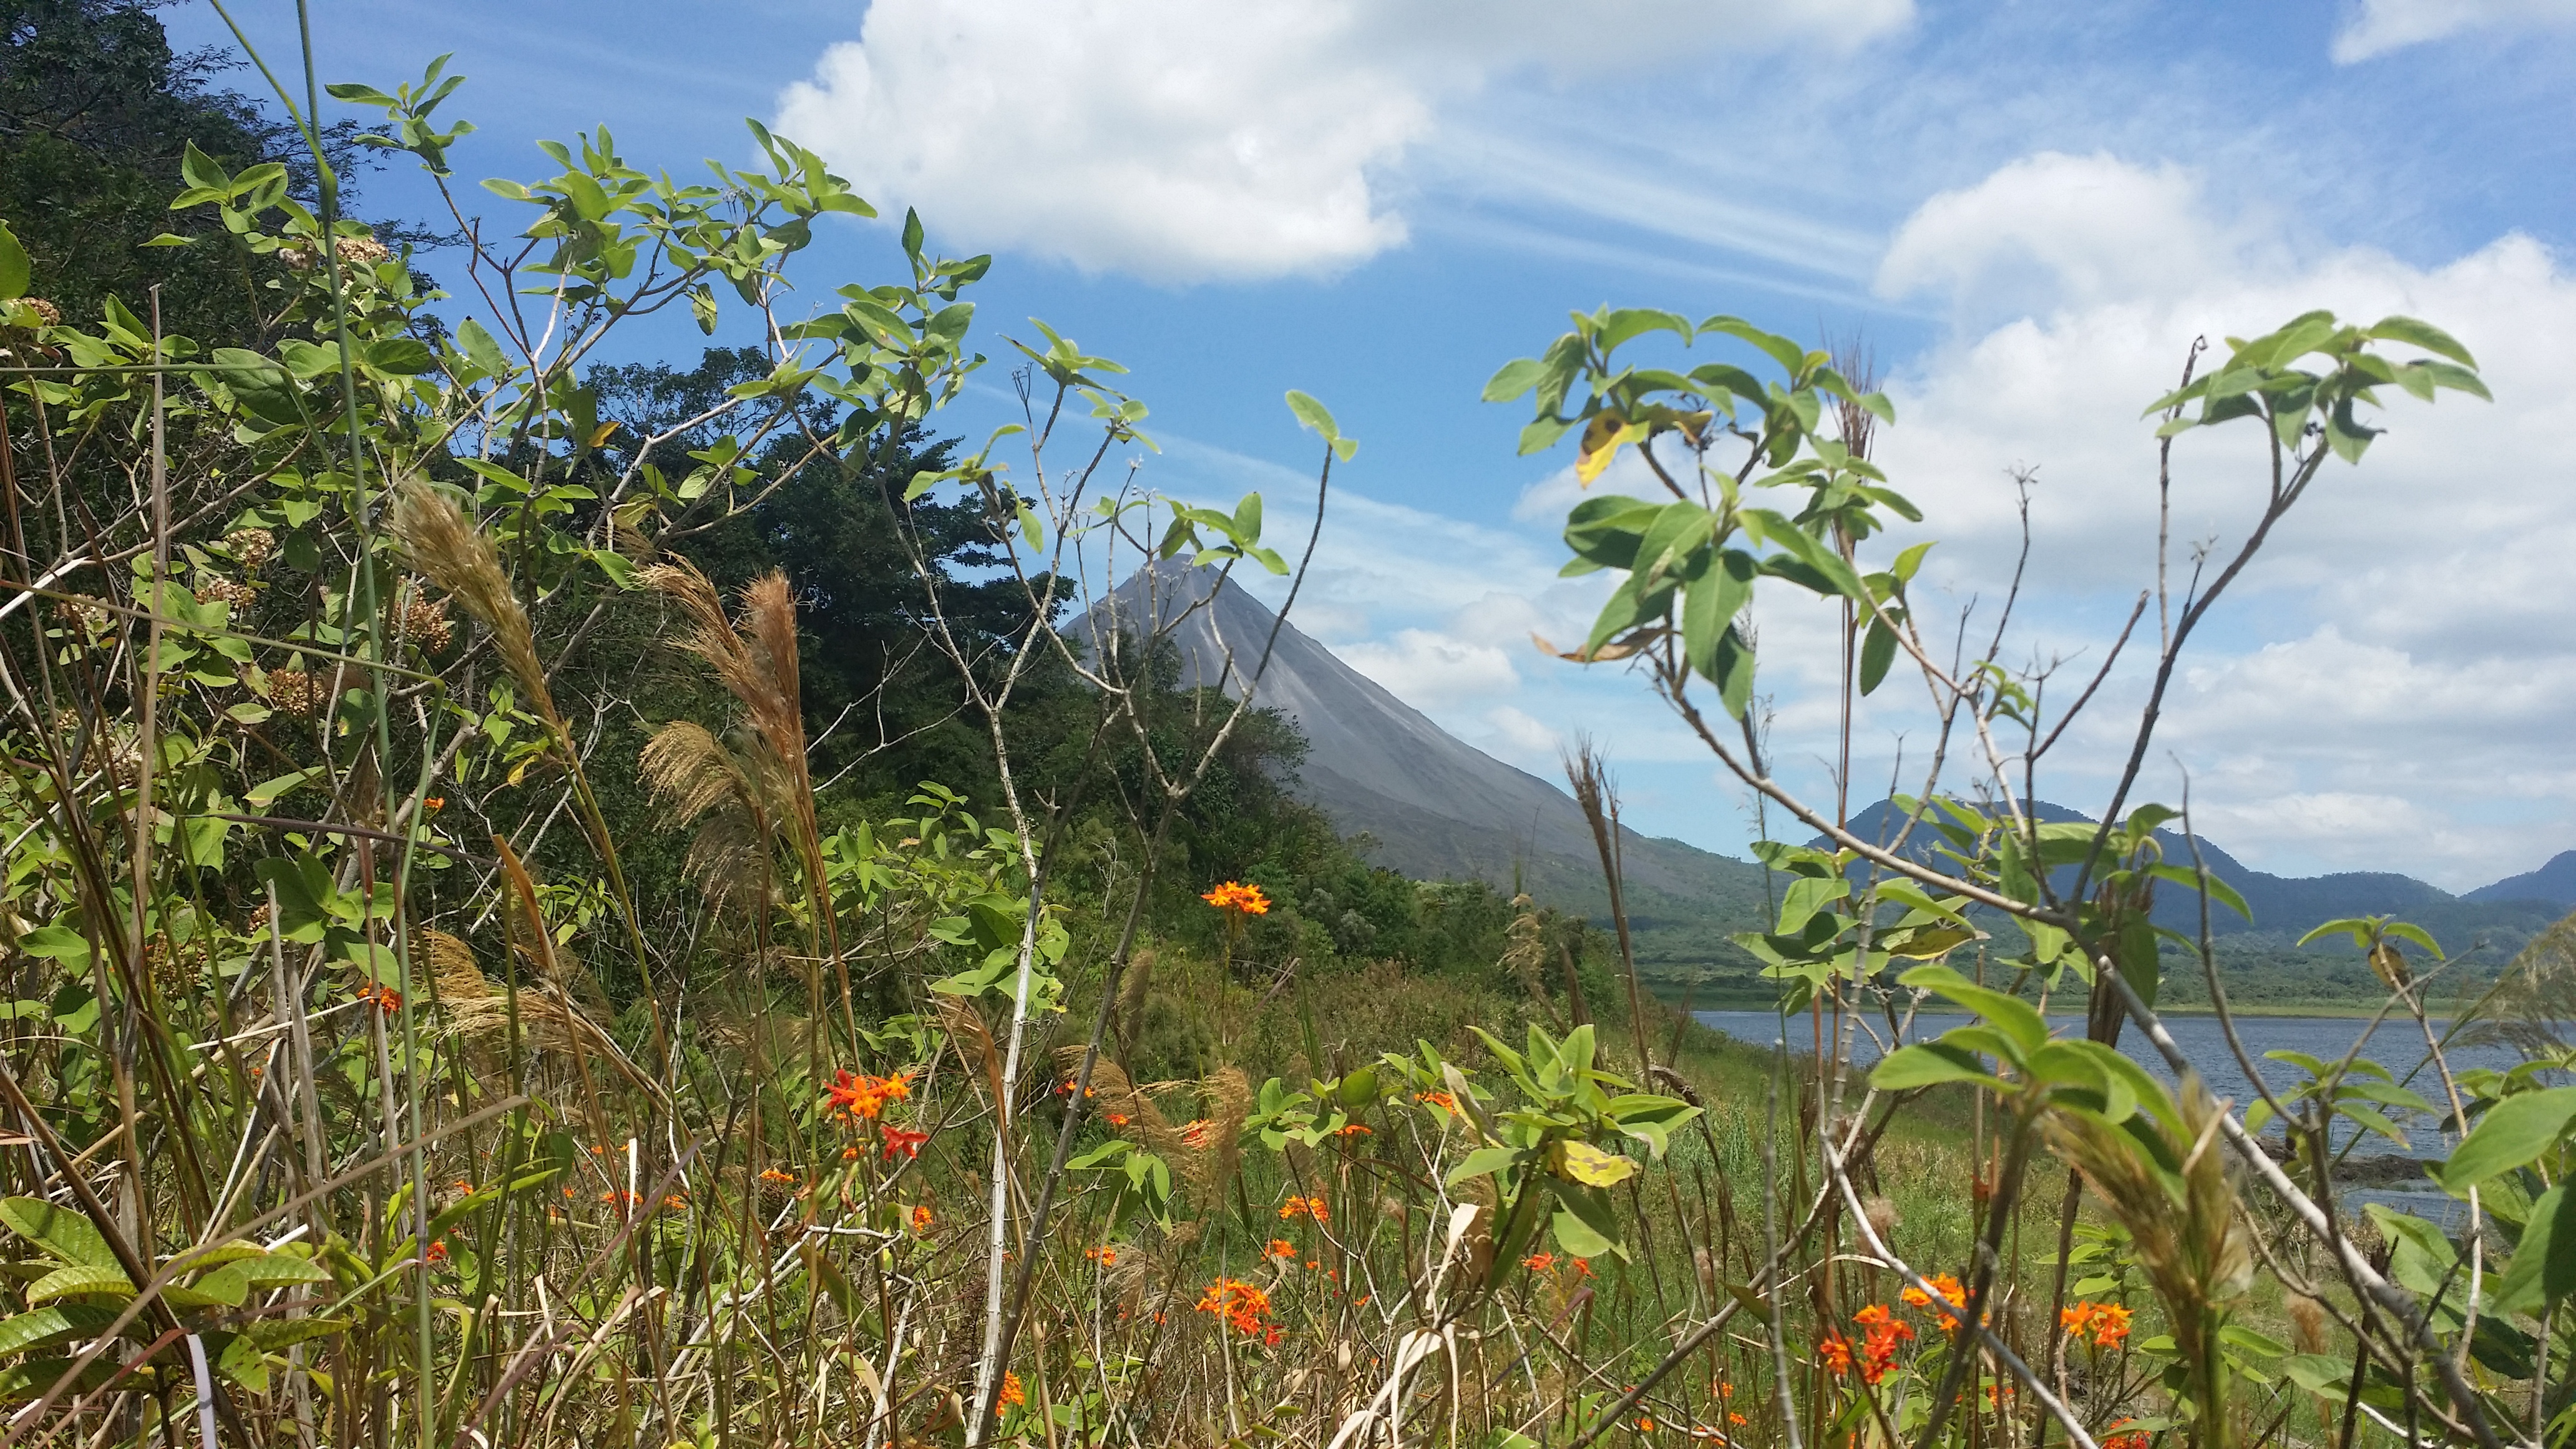 Great birding opportunities at Arenal Volcano National Park.